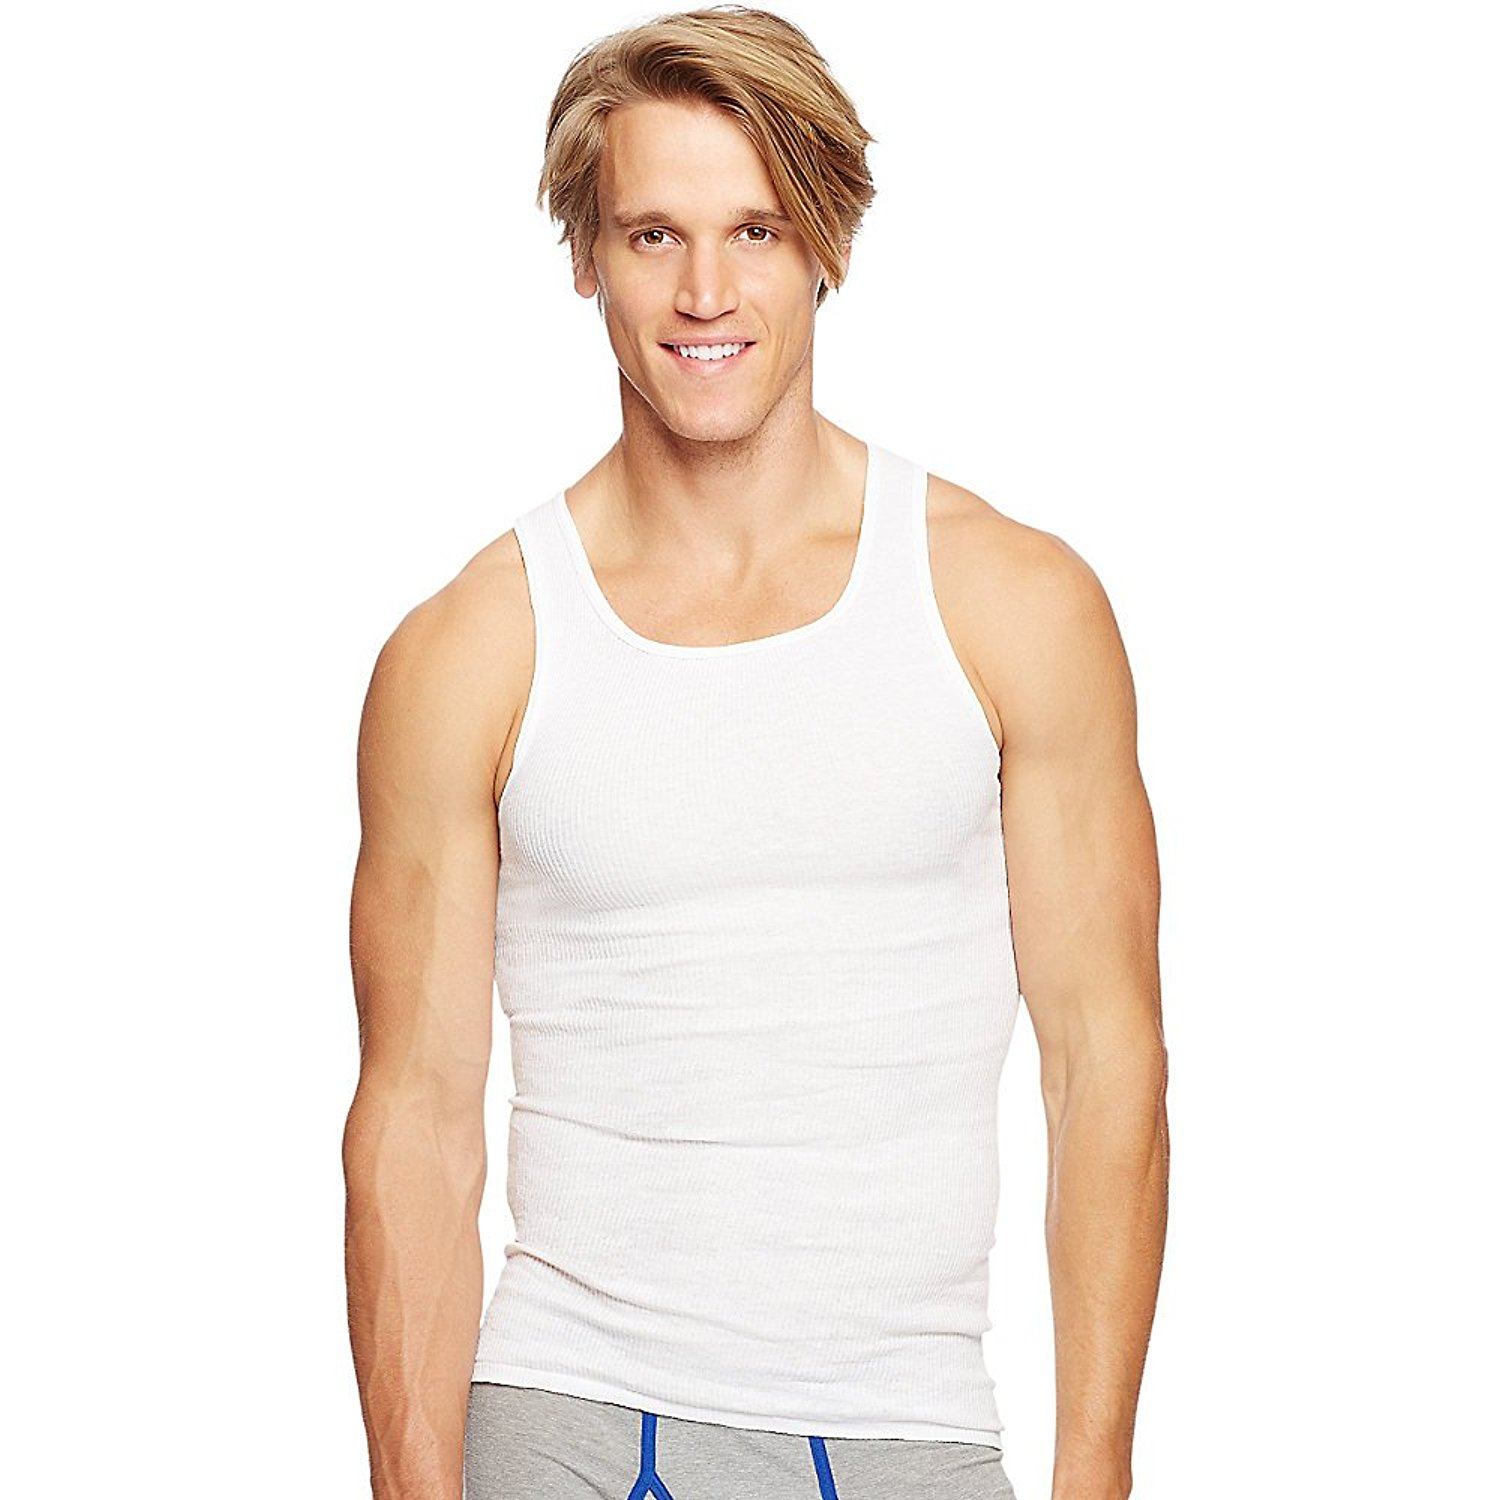 737000e7f635b Get Quotations · Hanes Men s 6Pack White A-Shirts Tagless Undershirts Tanks  Tank Tops